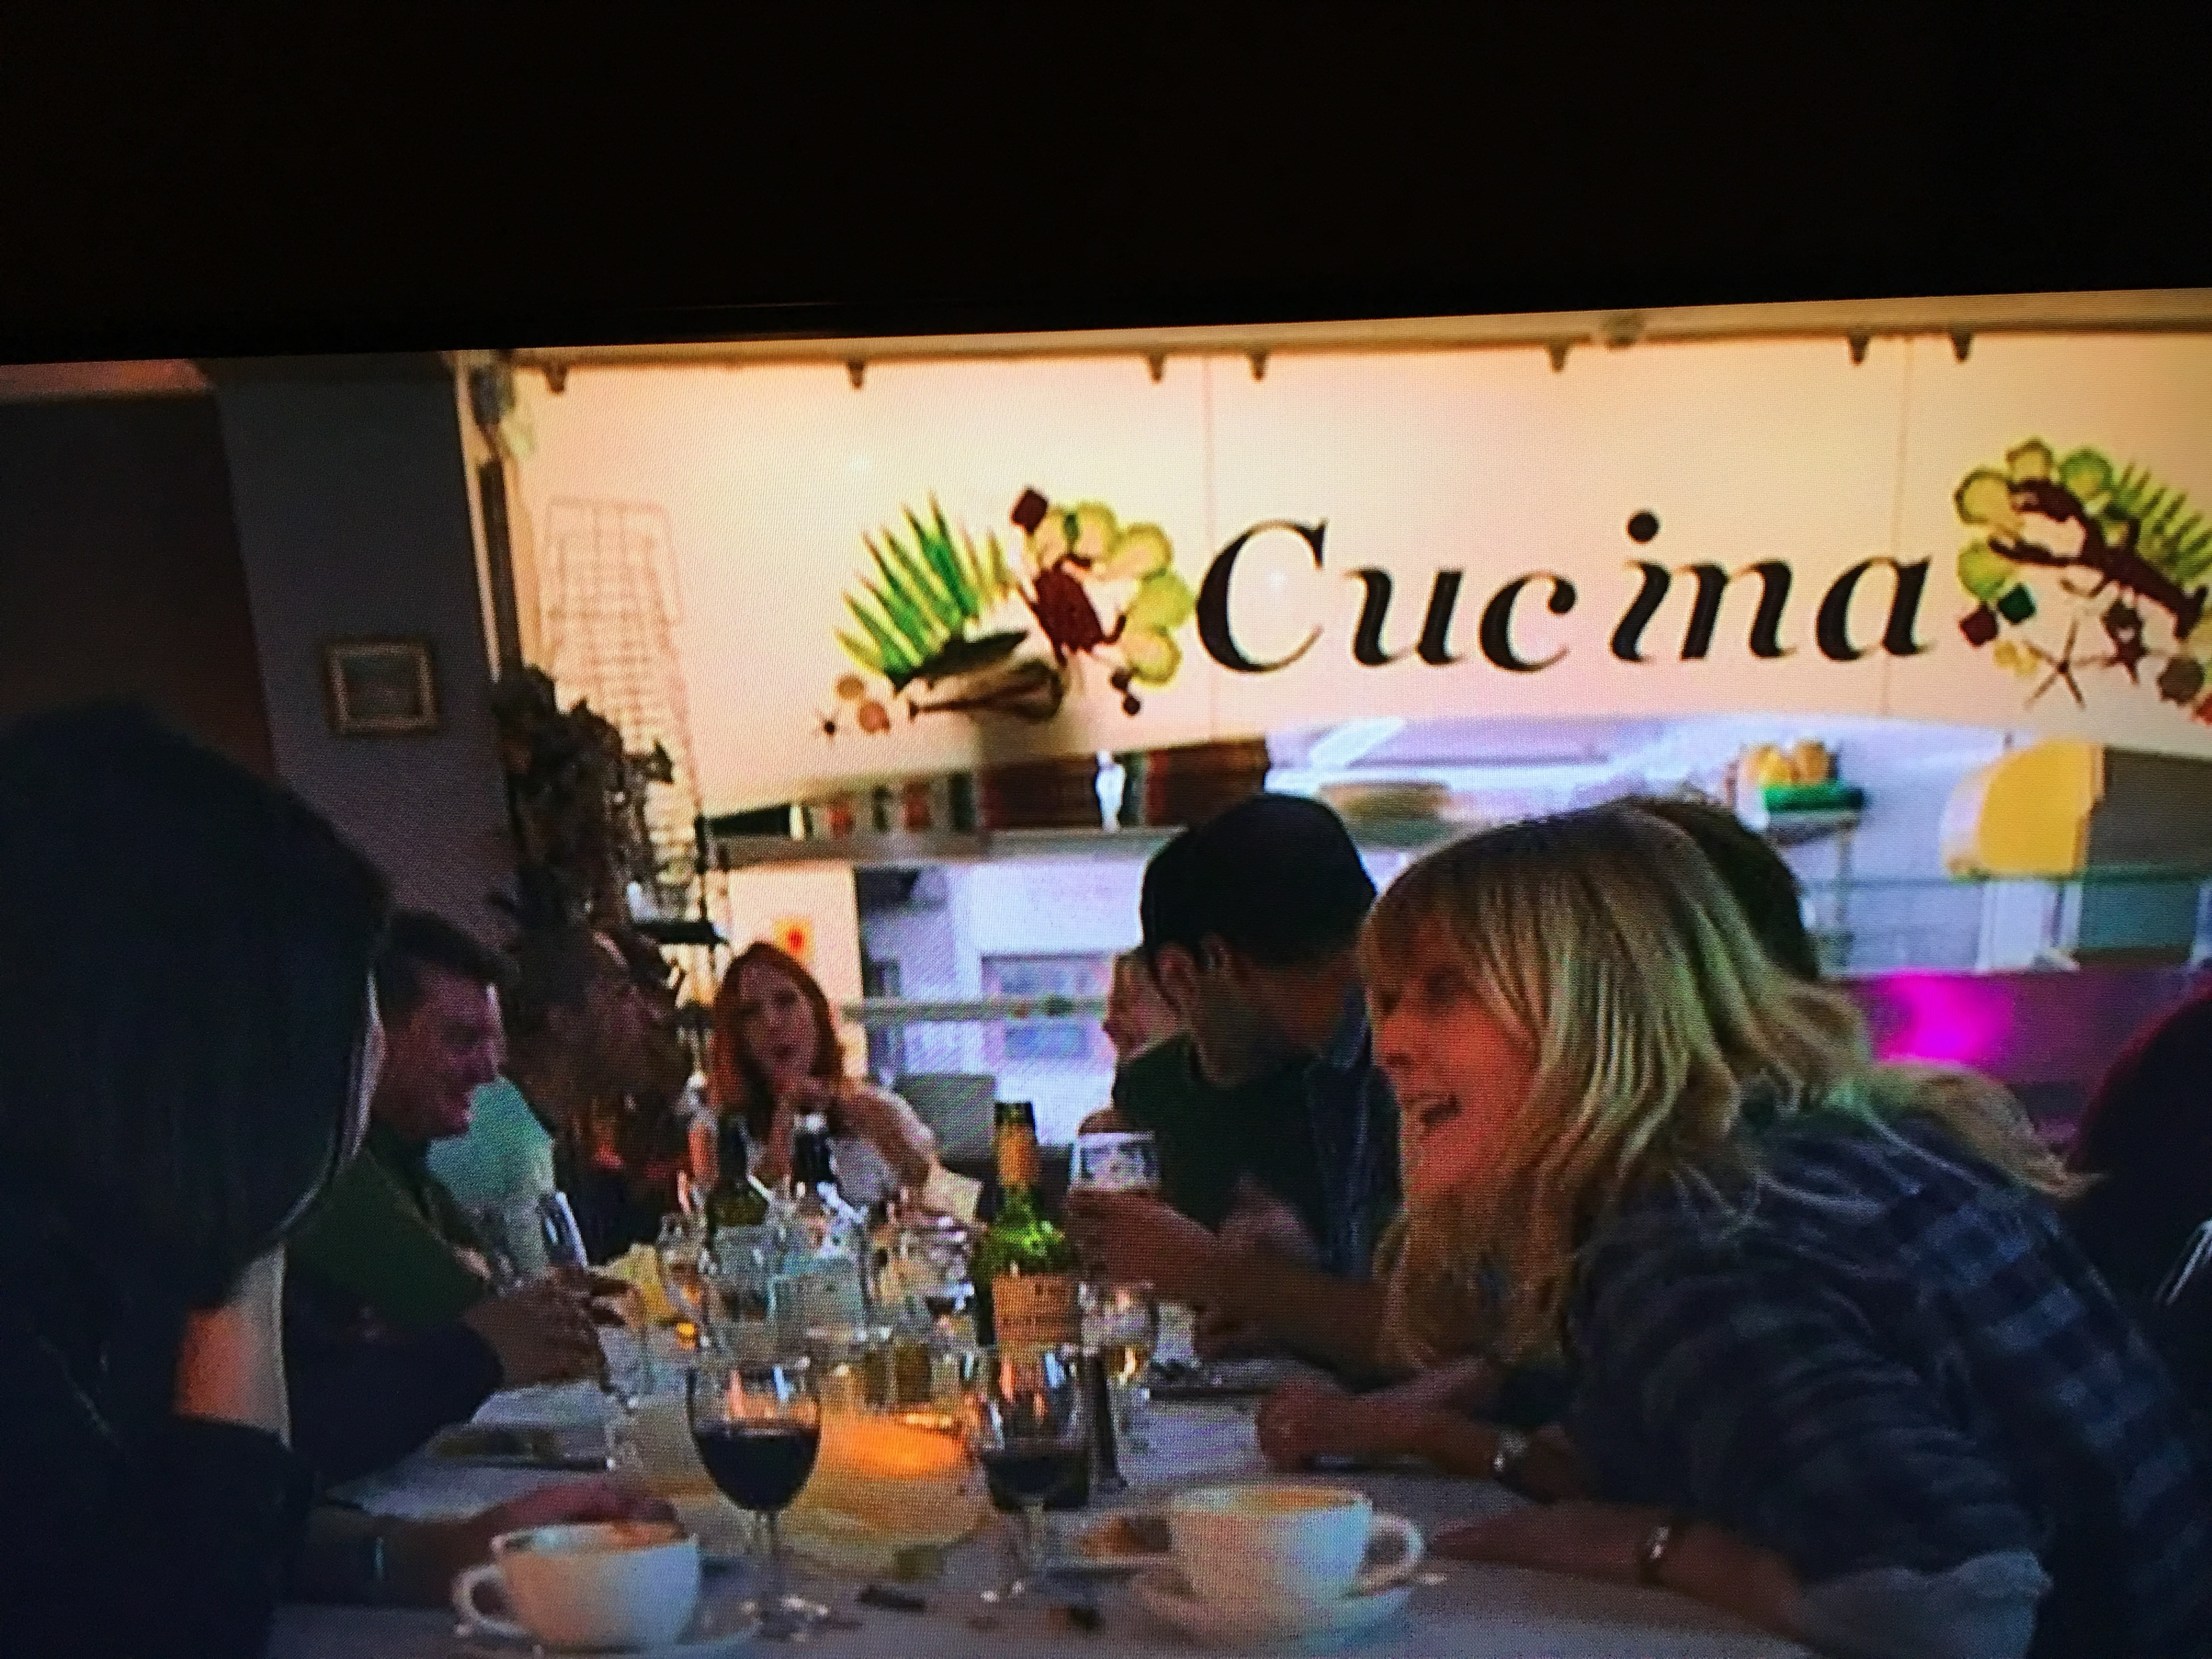 Bbc's Happy Valley Films At Grappolo Grappolo Restaurant » Authentic  Italian Food In Lockwood, Huddersfield